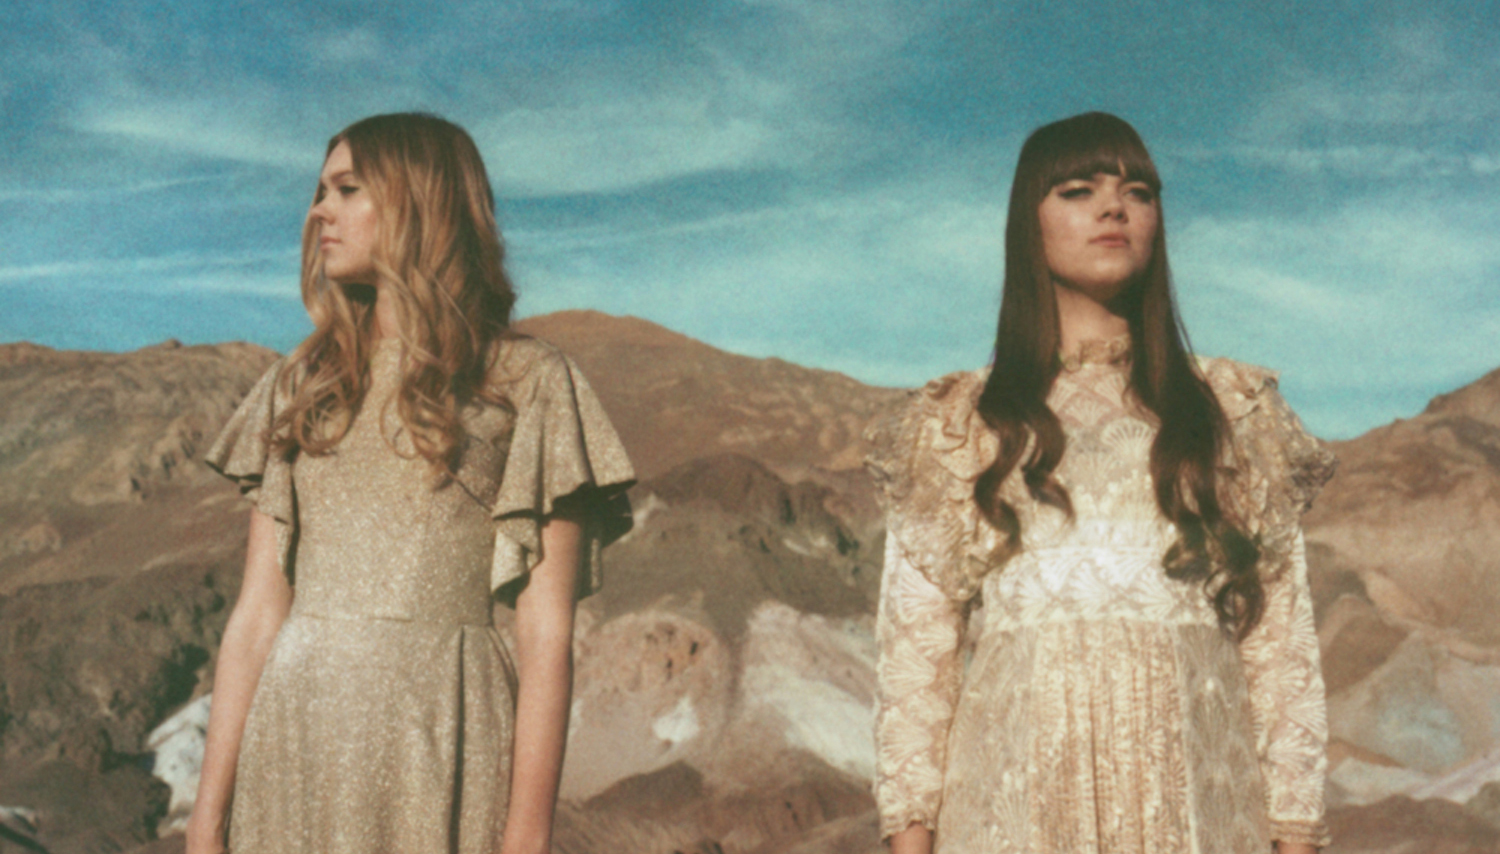 Nordic Playlist #49 – First Aid Kit, Sweden